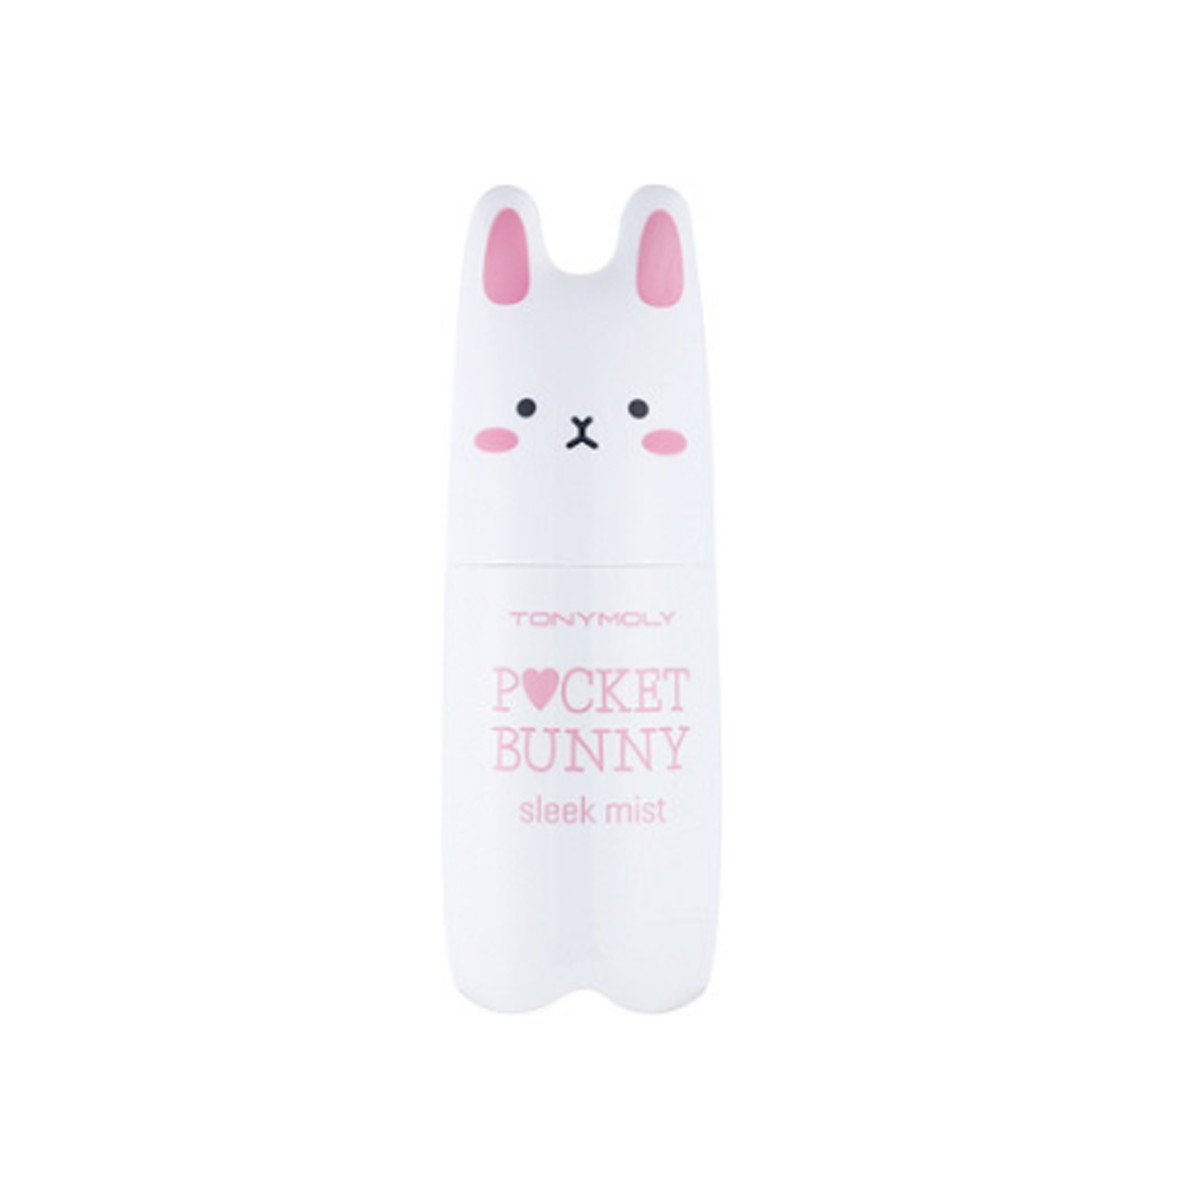 Product shot of bunny face mist photo